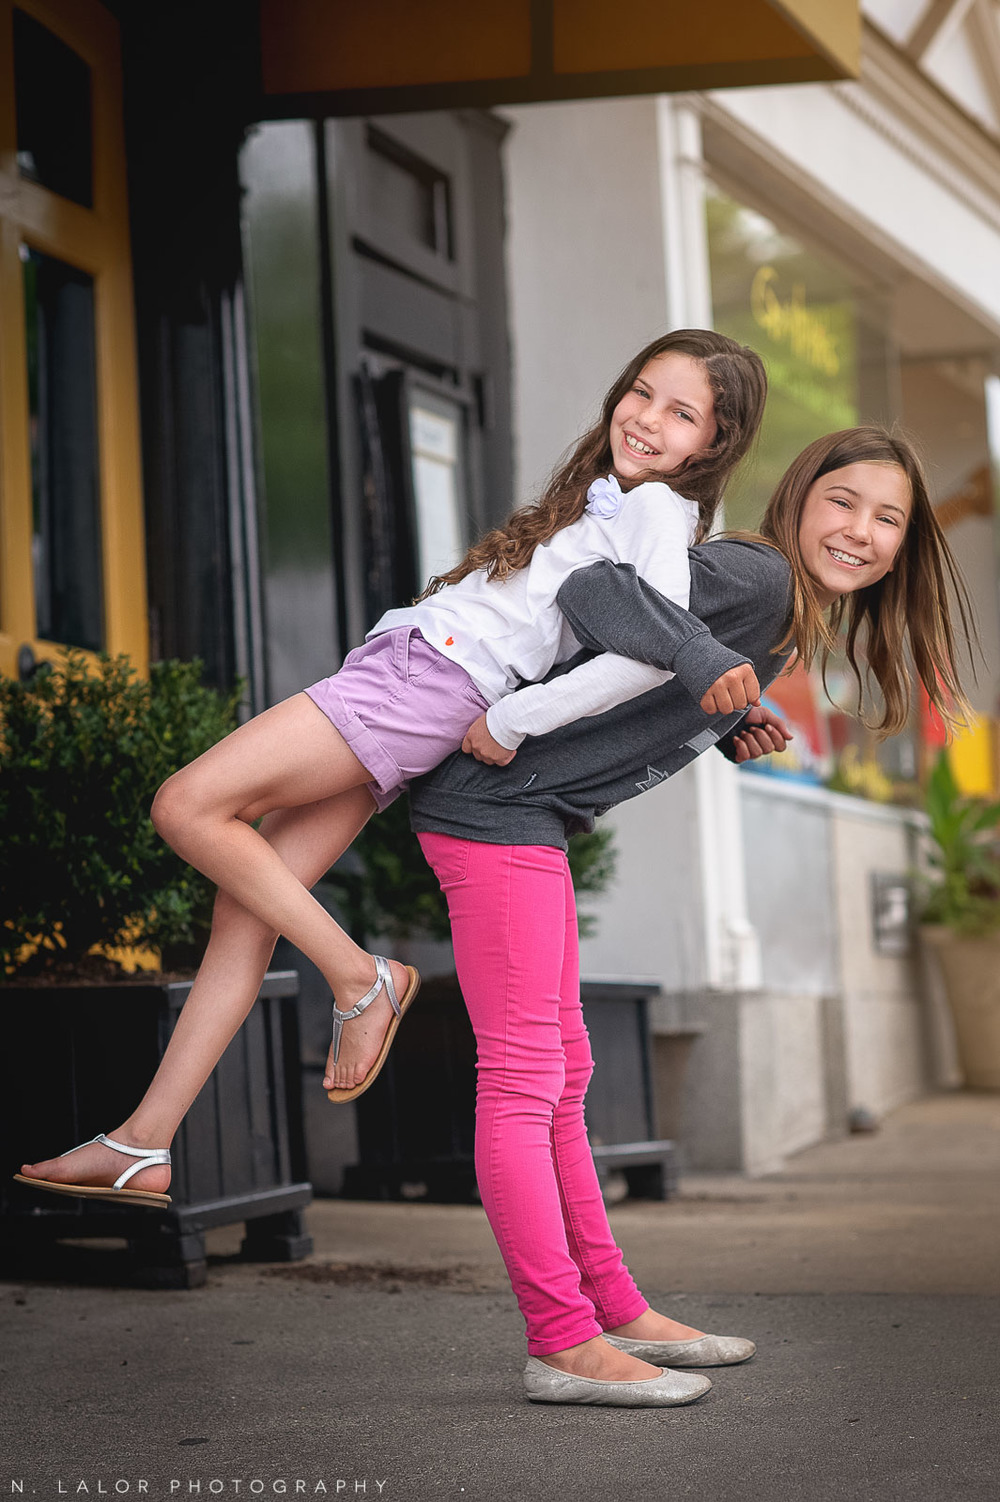 nlalor-photography-090314-fun-styled-tween-session-greenwich-avenue-connecticut-5.jpg